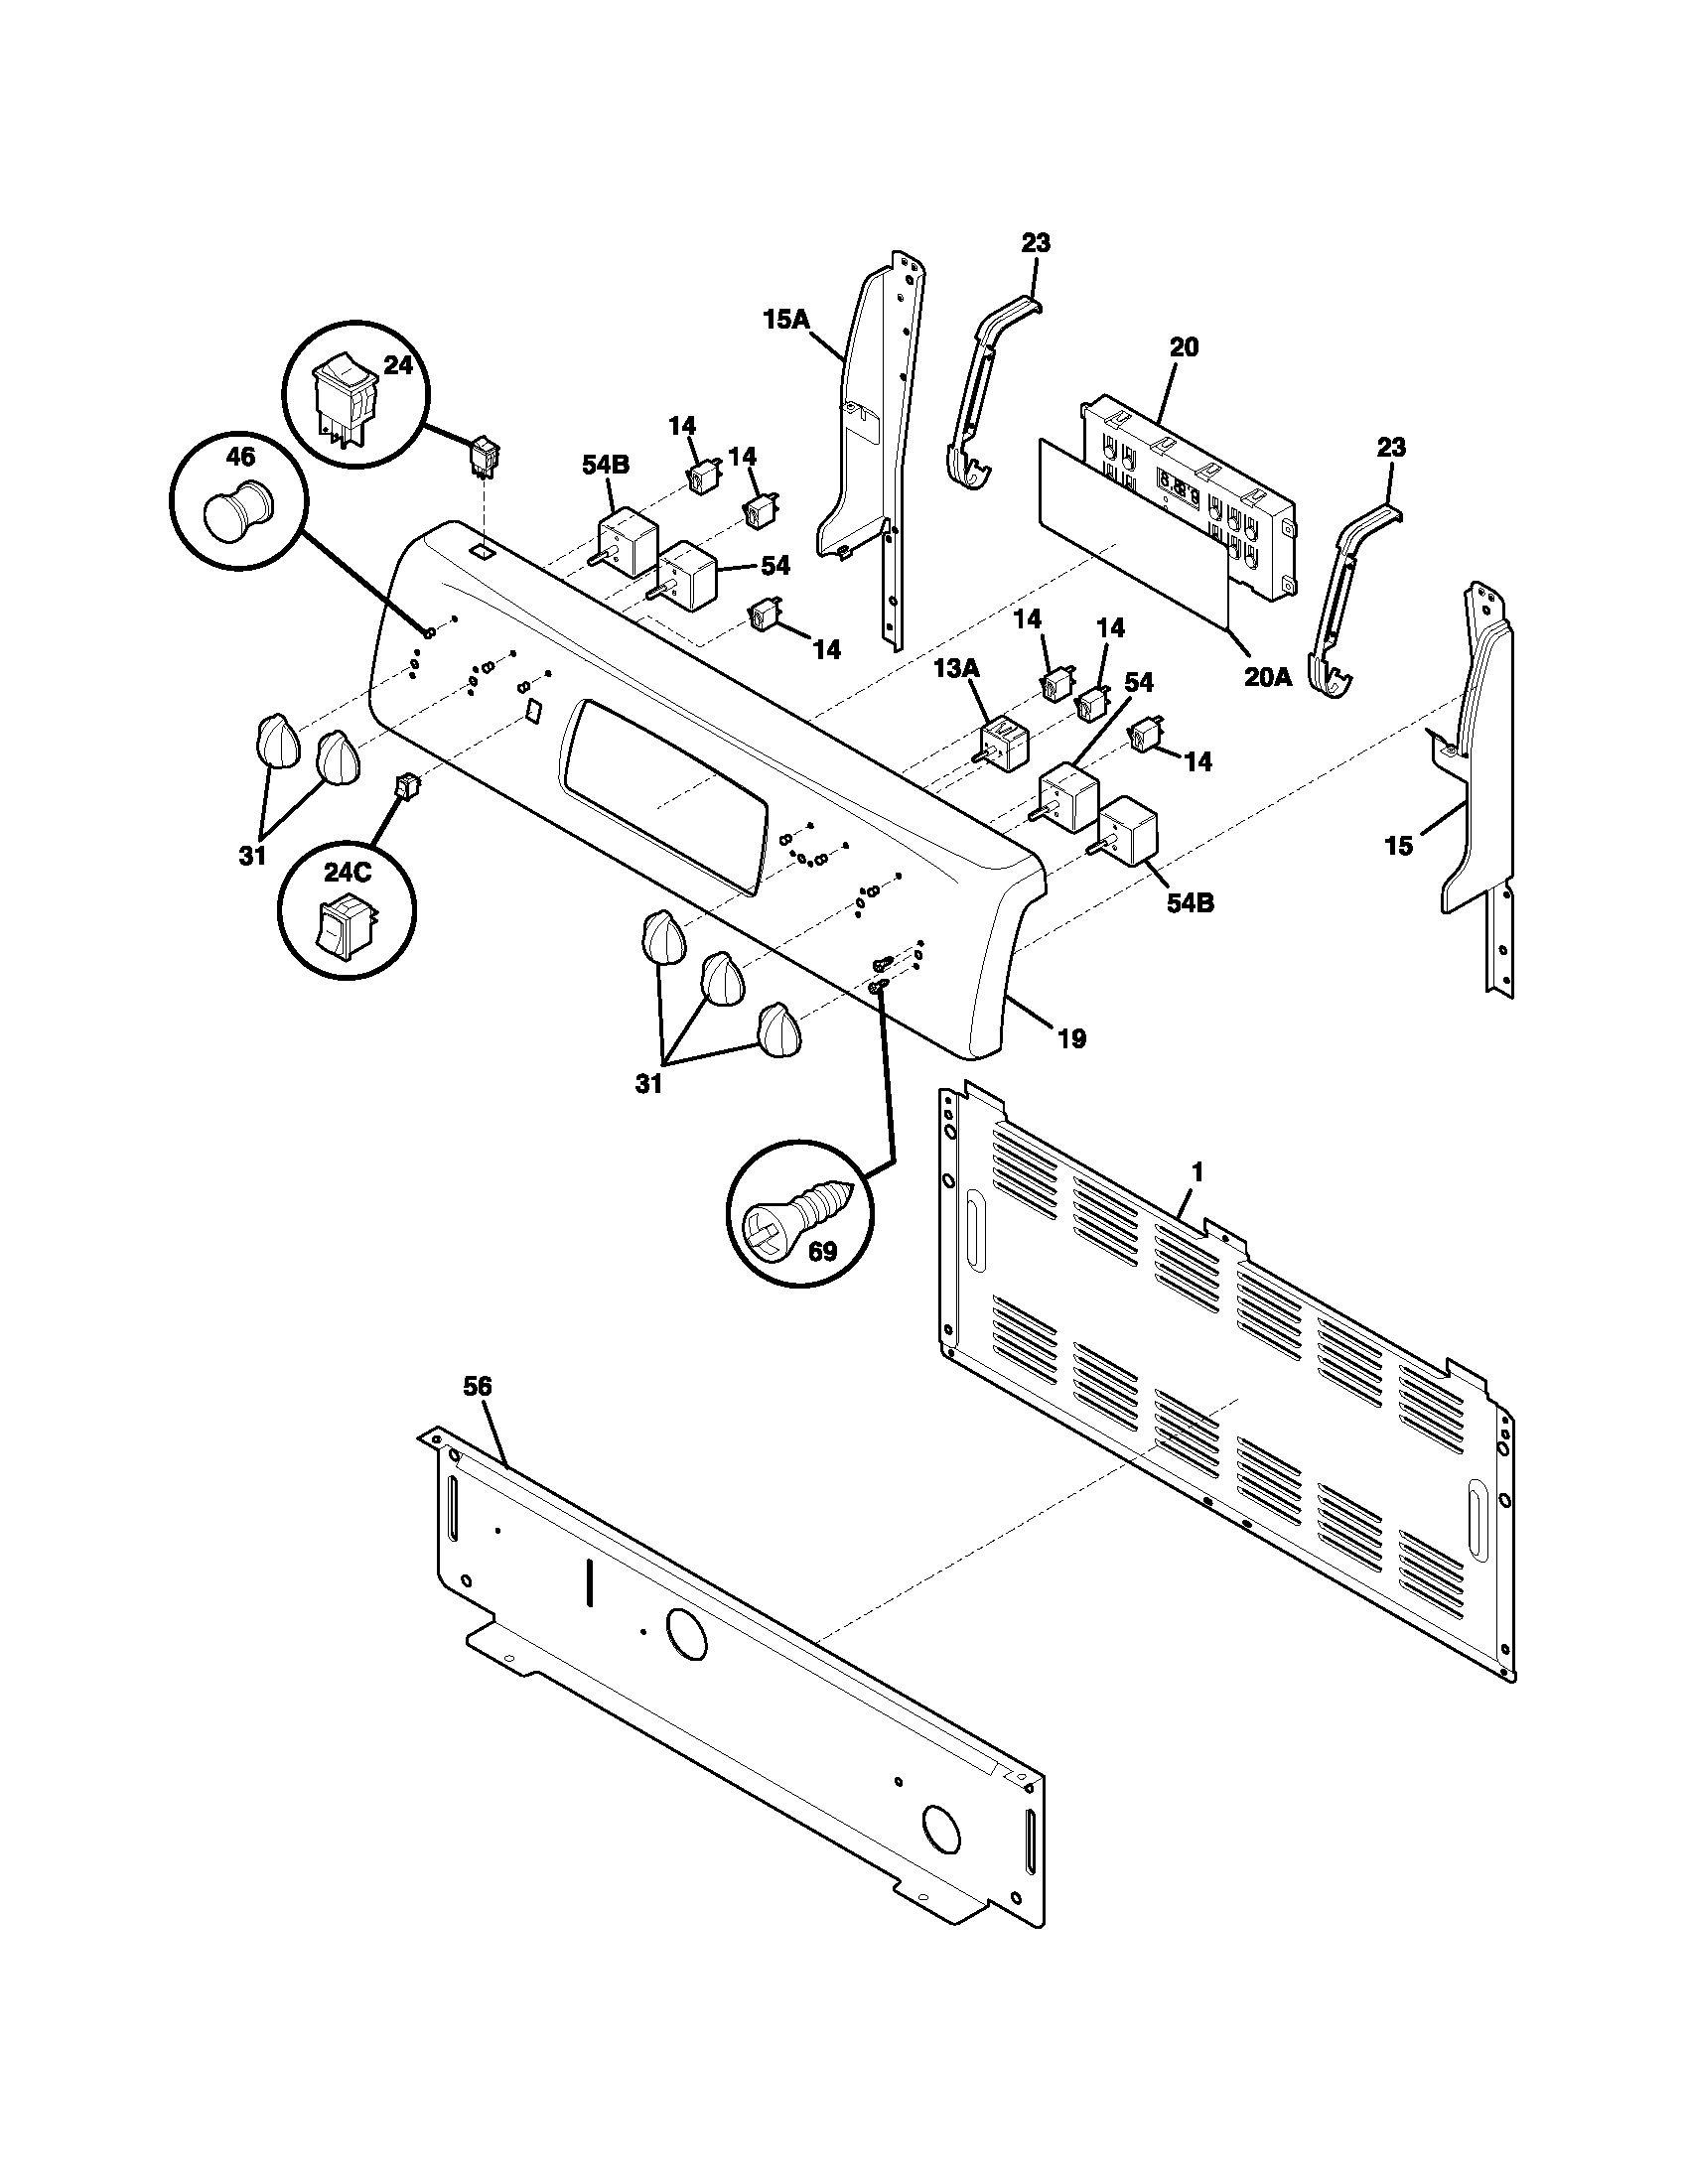 P 0900c152801c0cdc in addition RepairGuideContent in addition Audi A4 Oil Sensor Wiring Diagrams besides 1999 Audi A6 Quattro Thermostat Location in addition 6pl0i Audi A6 Quattro Avant Audi A6 C5 2 8 Quattro Starting. on audi a4 1 8t engine diagram